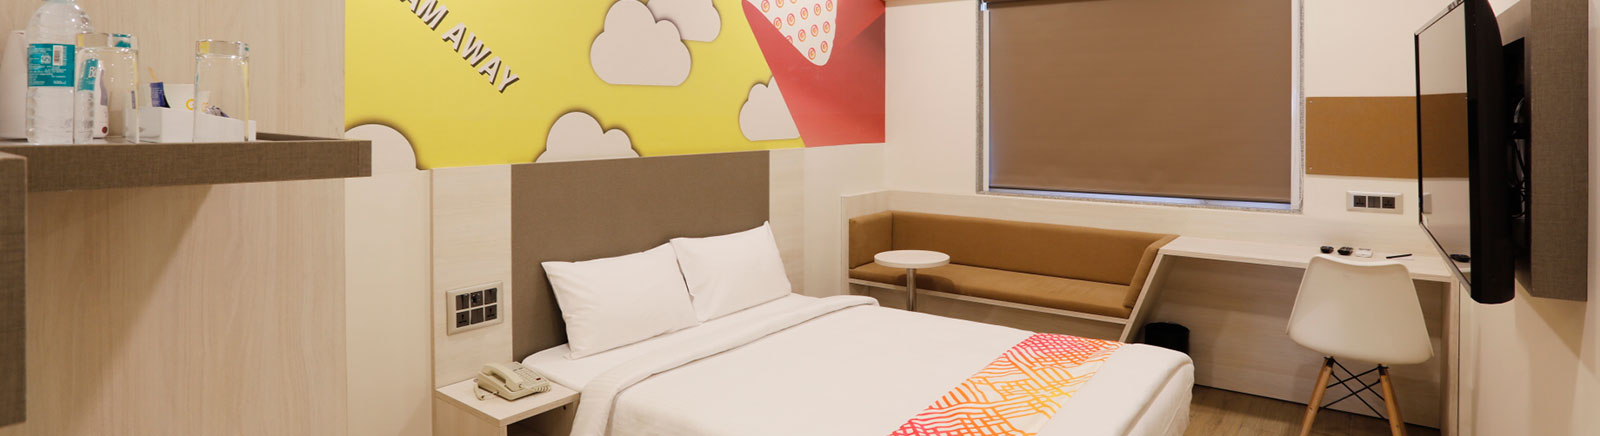 Reach Us - Ginger Hotel Sanand